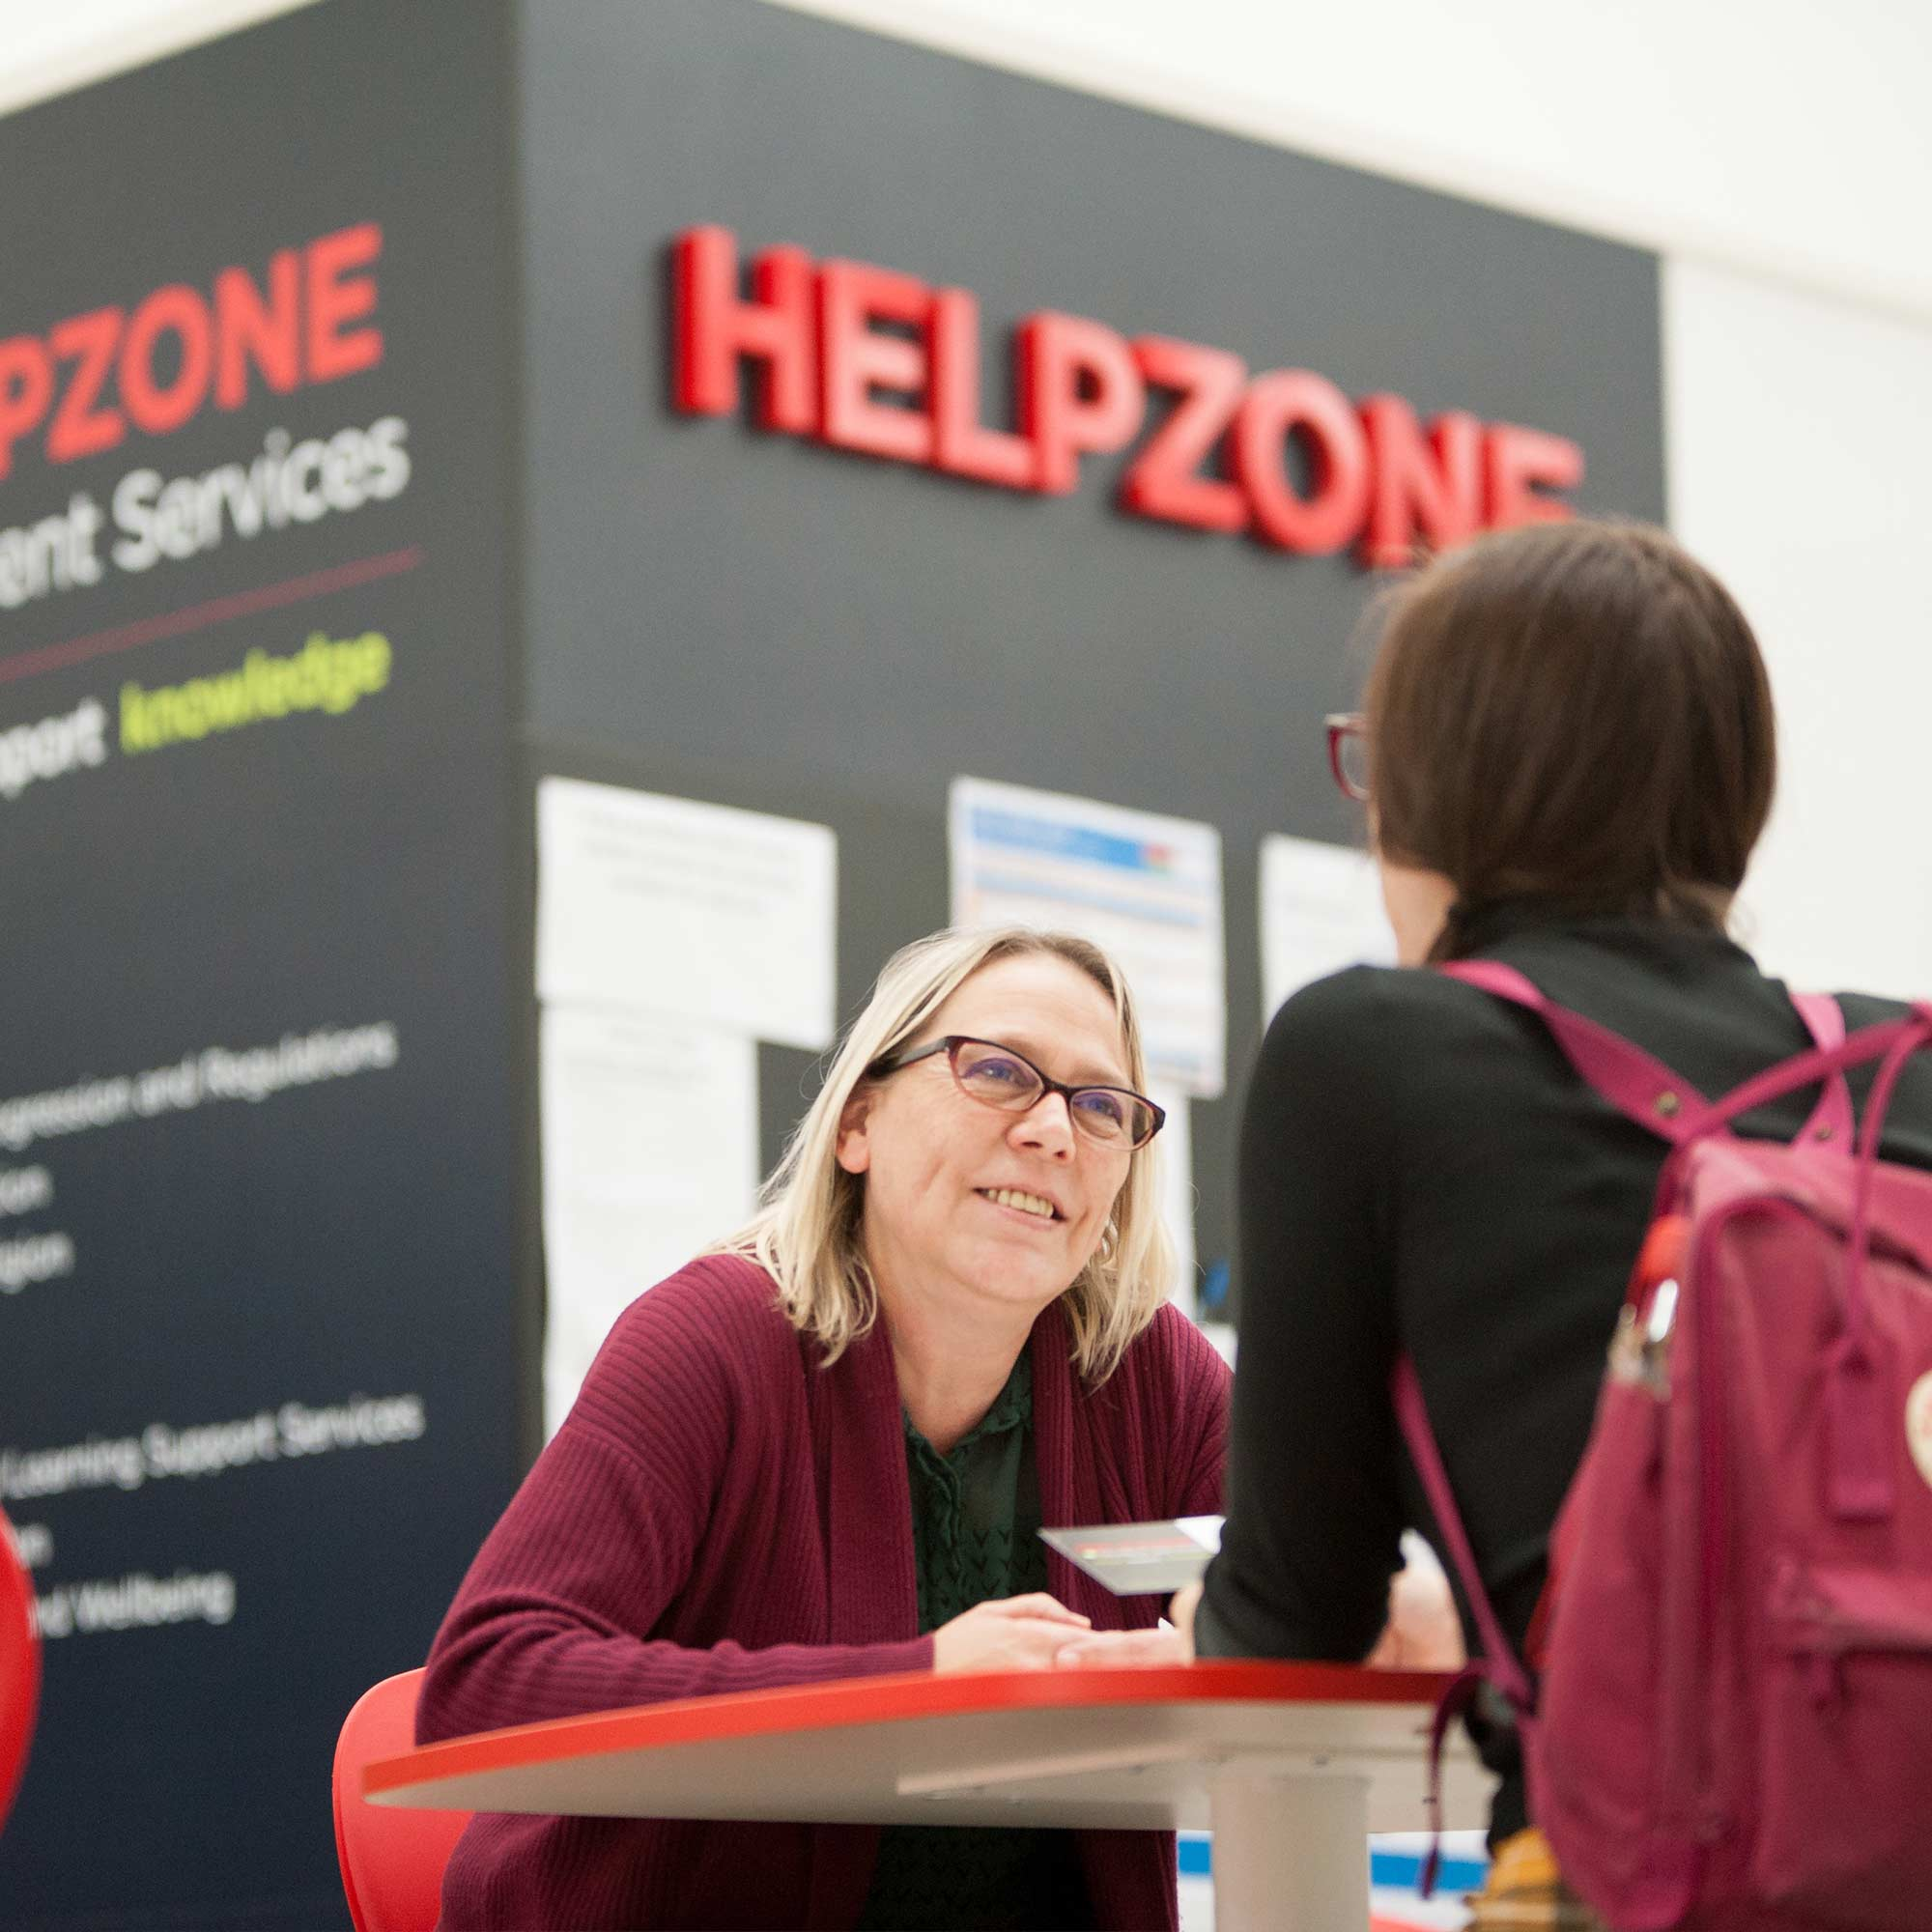 Student talking to an advisor at the Help Zone